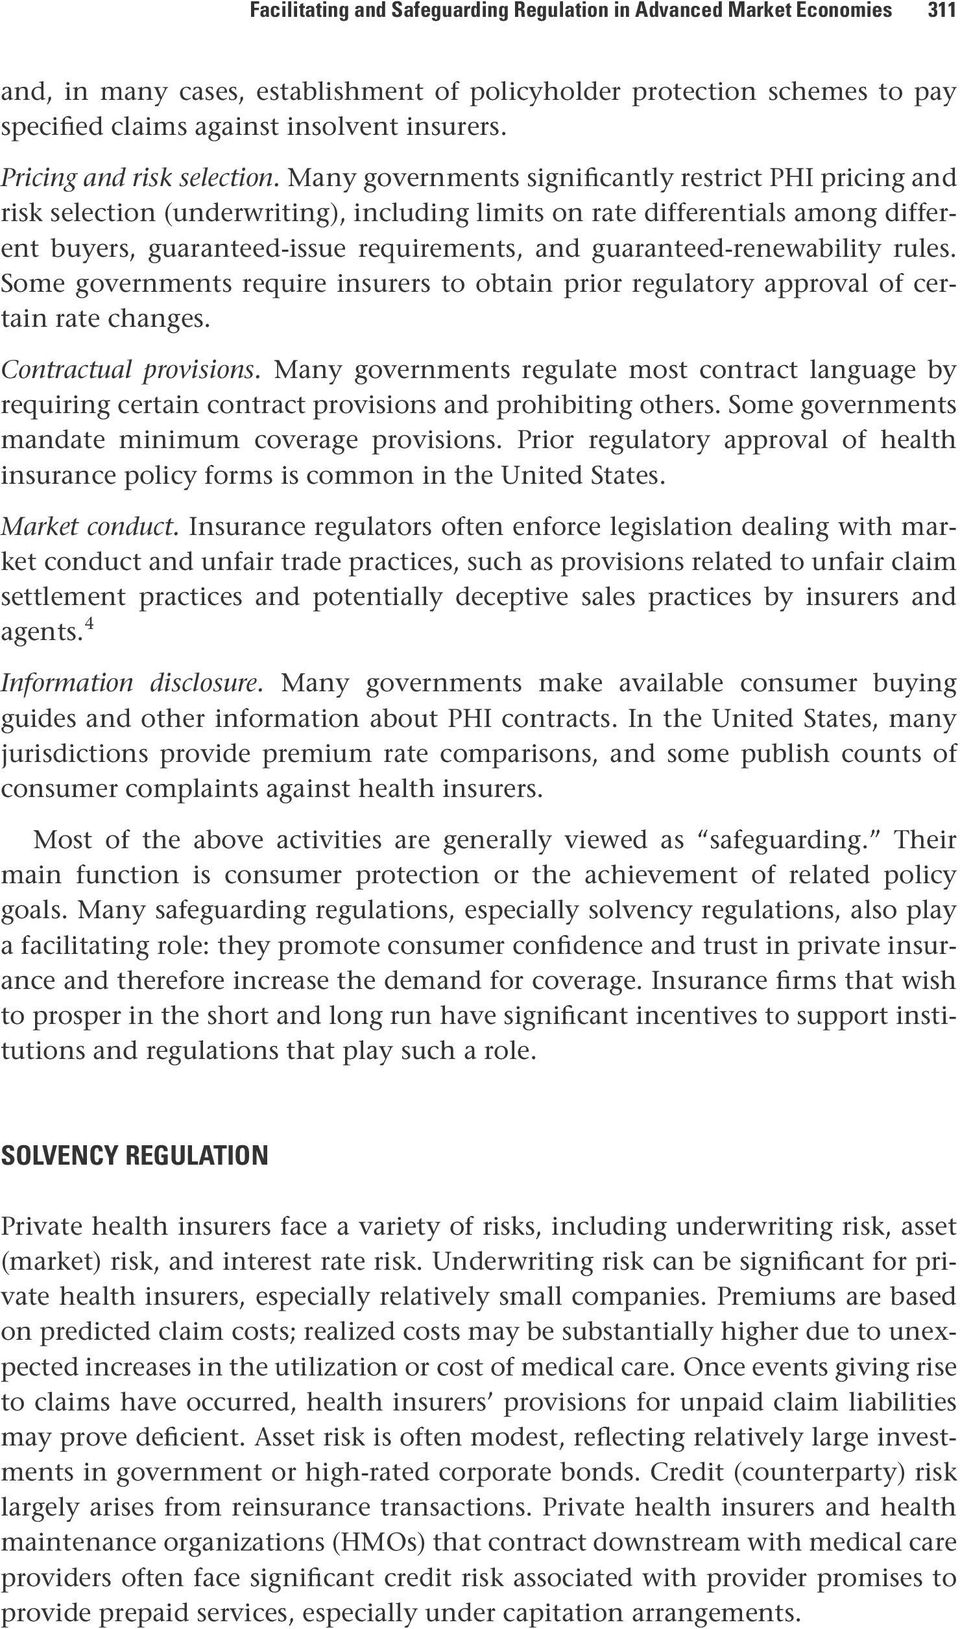 Many governments significantly restrict PHI pricing and risk selection (underwriting), including limits on rate differentials among different buyers, guaranteed-issue requirements, and